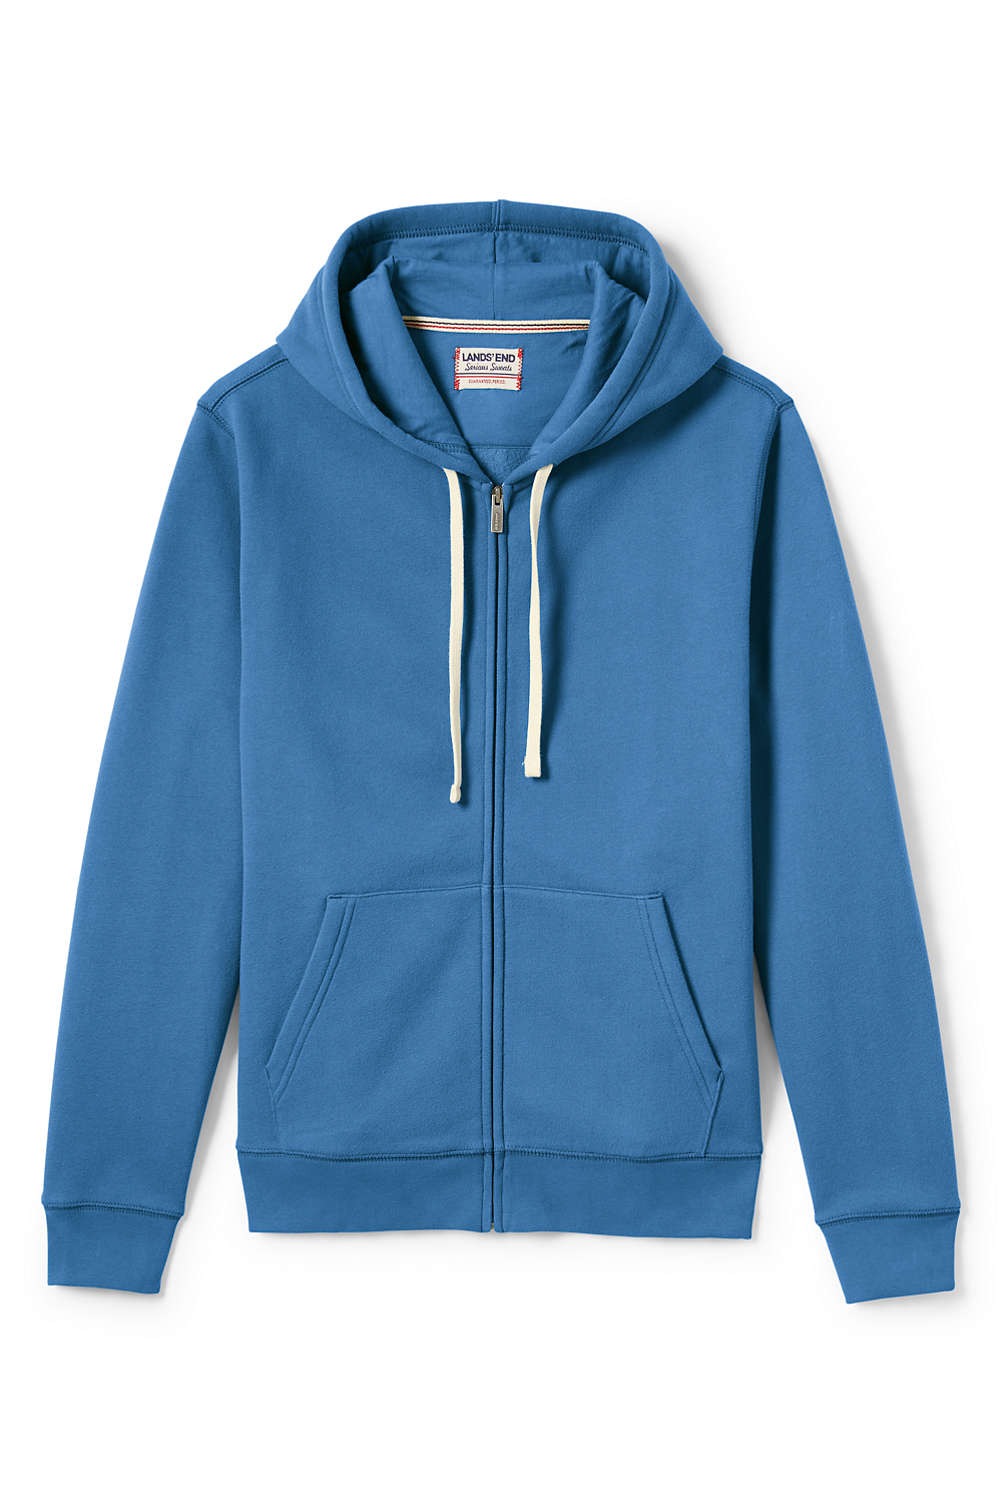 abc6f324 Men's Serious Sweats Full Zip Hoodie from Lands' End